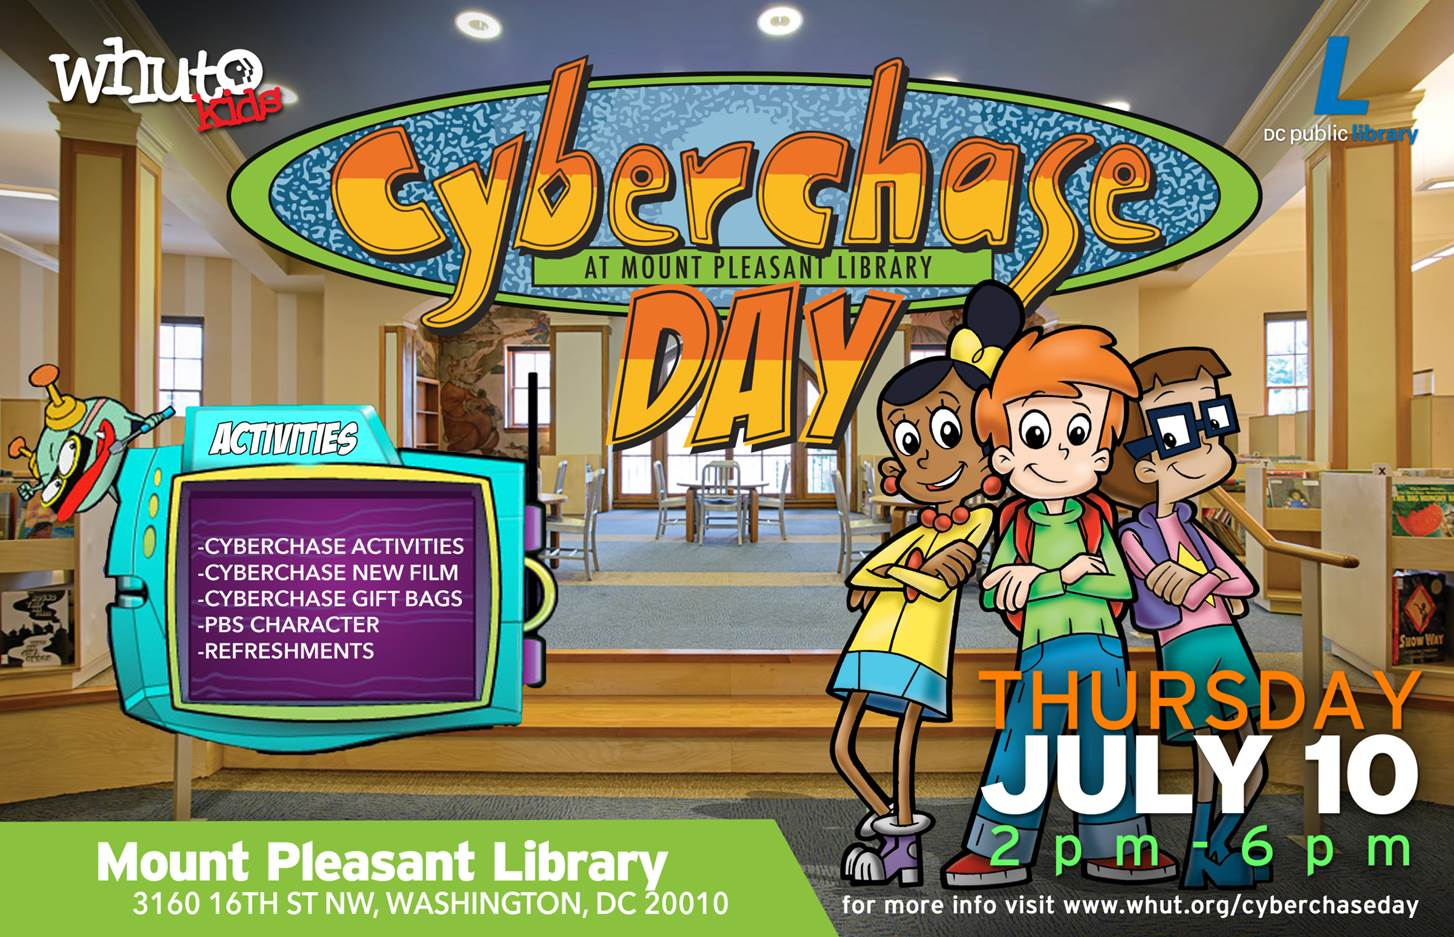 Cyberchase Day Flyer